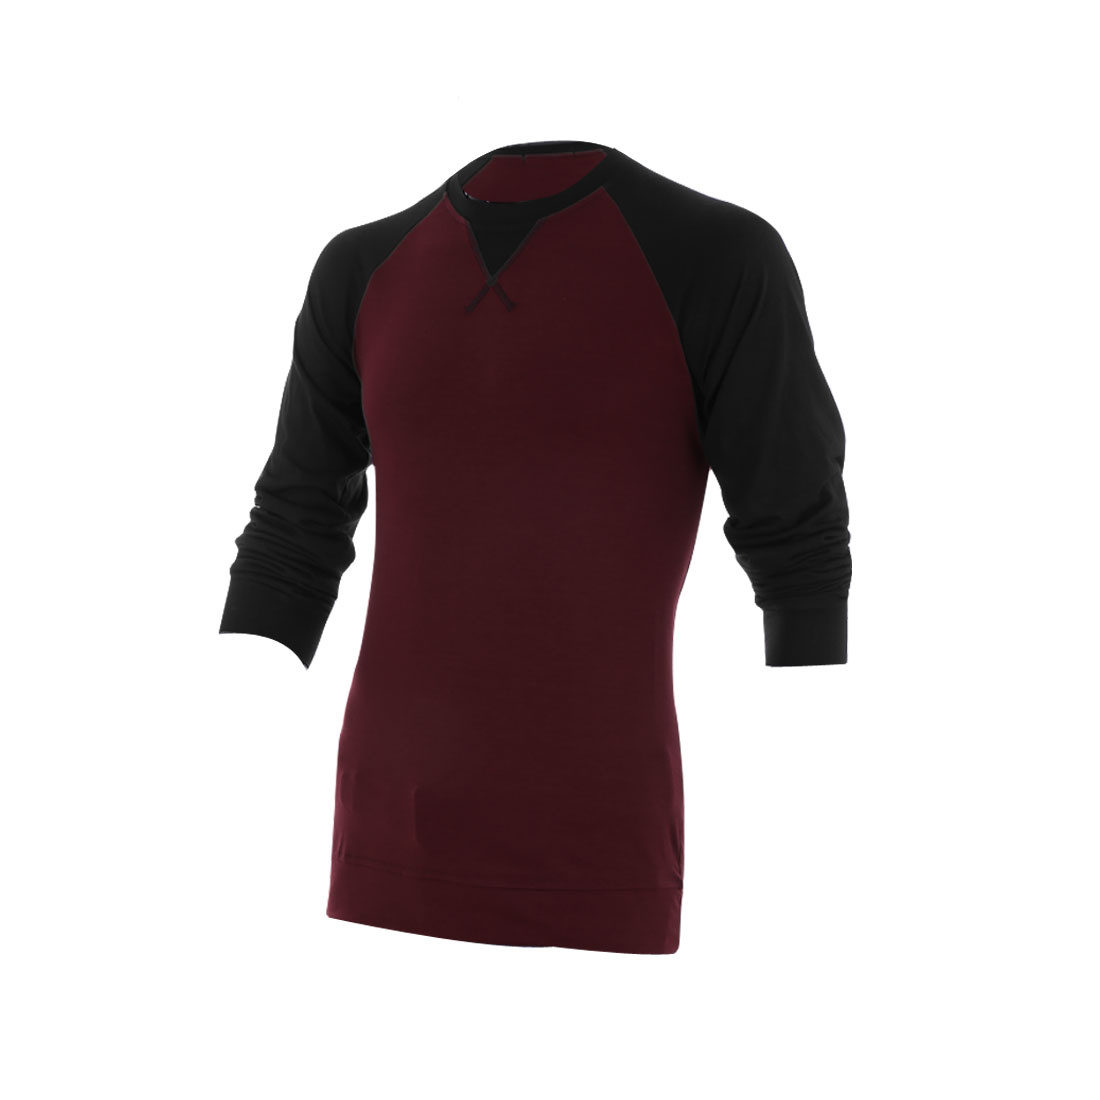 Slipover Stretchy Slim Fit Black Long Raglan Sleeve Burgundy Shirt for Man M